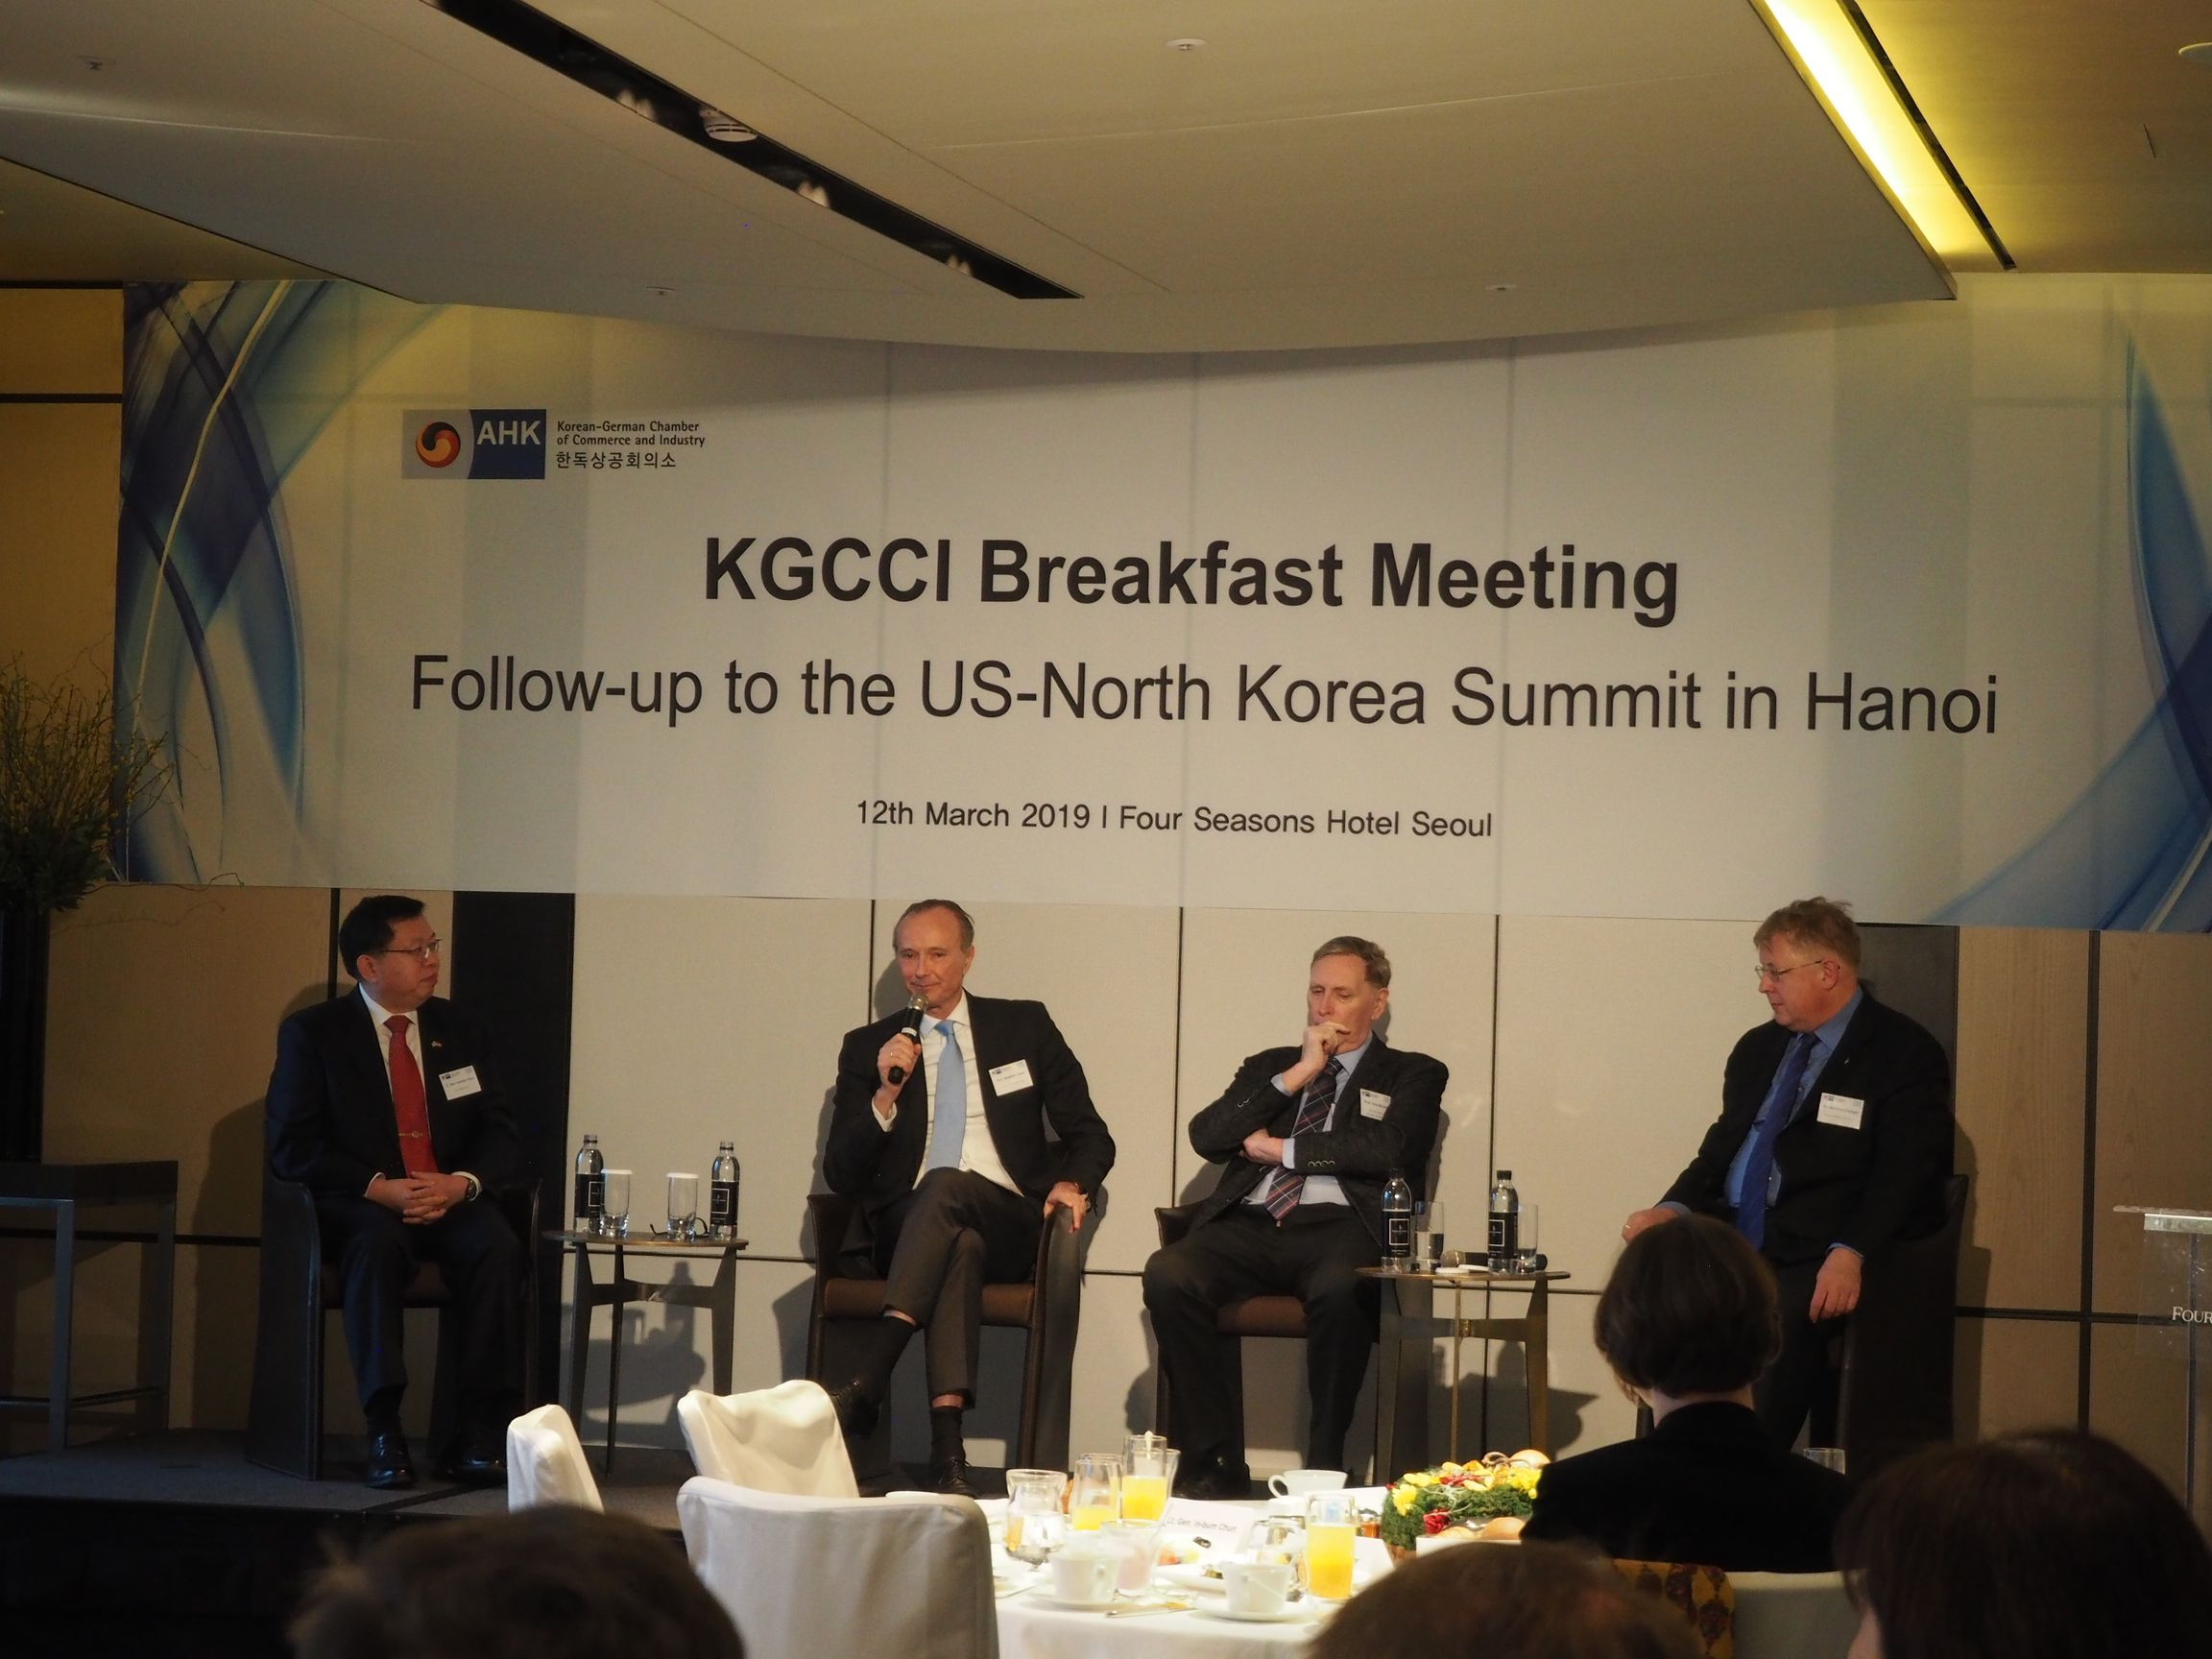 Von links: Leutnant General (ret.) Chun In-bum, H. E. Stephan Auer (Deutscher Botschafter in Seoul), Tony Michell Ph.D (Korea Associates Business Consultancy), Dr. Bernhard Seliger (HSS Korea)